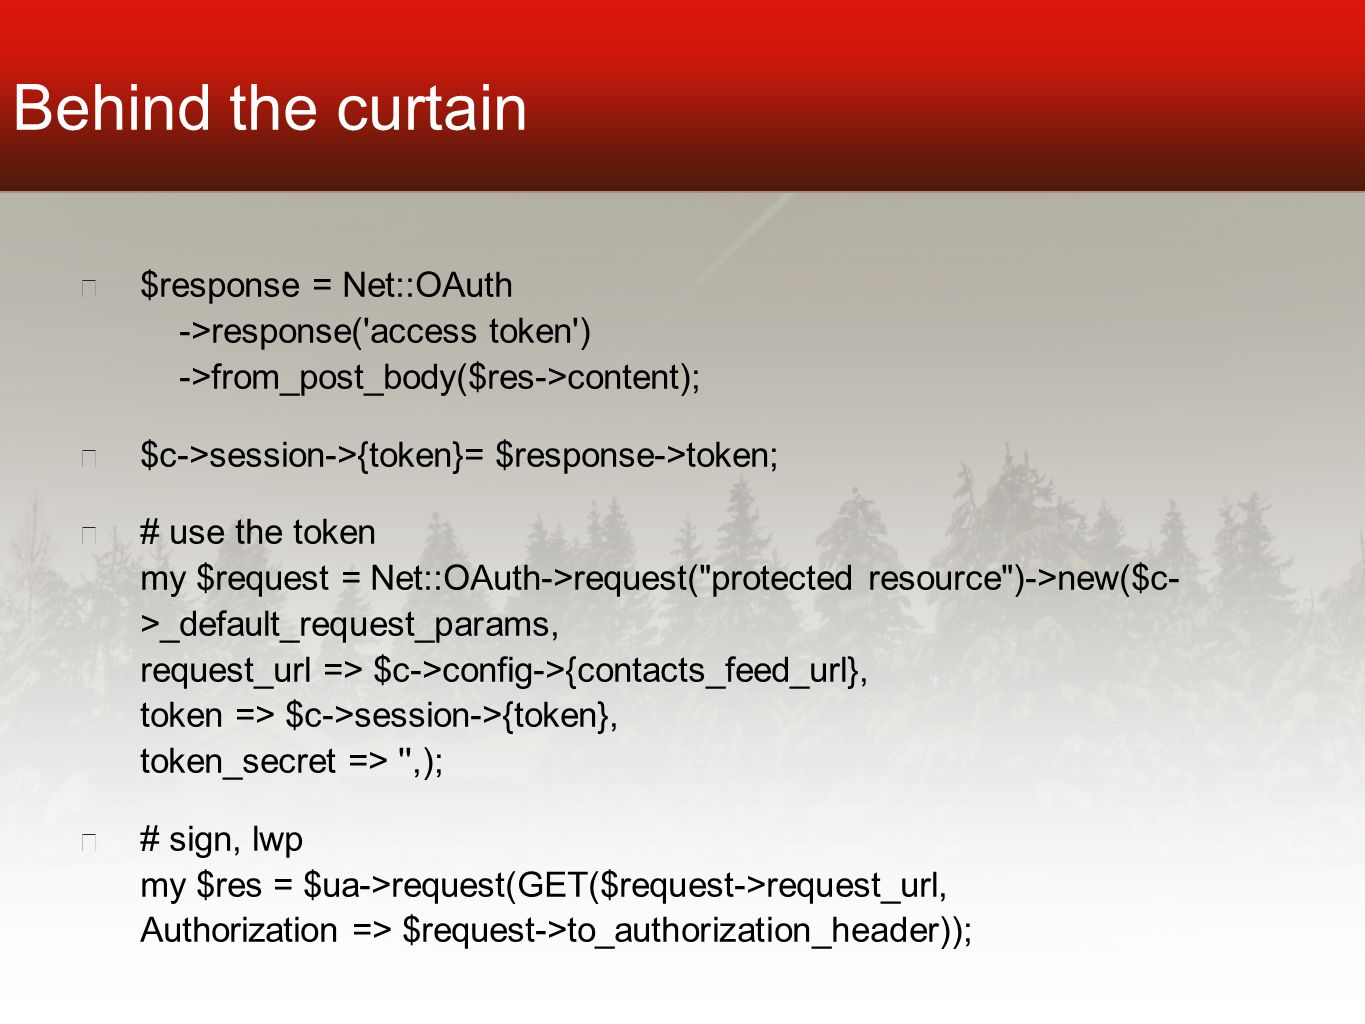 Behind the curtain ★ $response = Net::OAuth ->response( access token ) ->from_post_body($res->content); ★ $c->session->{token}= $response->token; ★ # use the token my $request = Net::OAuth->request( protected resource )->new($c- >_default_request_params, request_url => $c->config->{contacts_feed_url}, token => $c->session->{token}, token_secret => ,); ★ # sign, lwp my $res = $ua->request(GET($request->request_url, Authorization => $request->to_authorization_header));